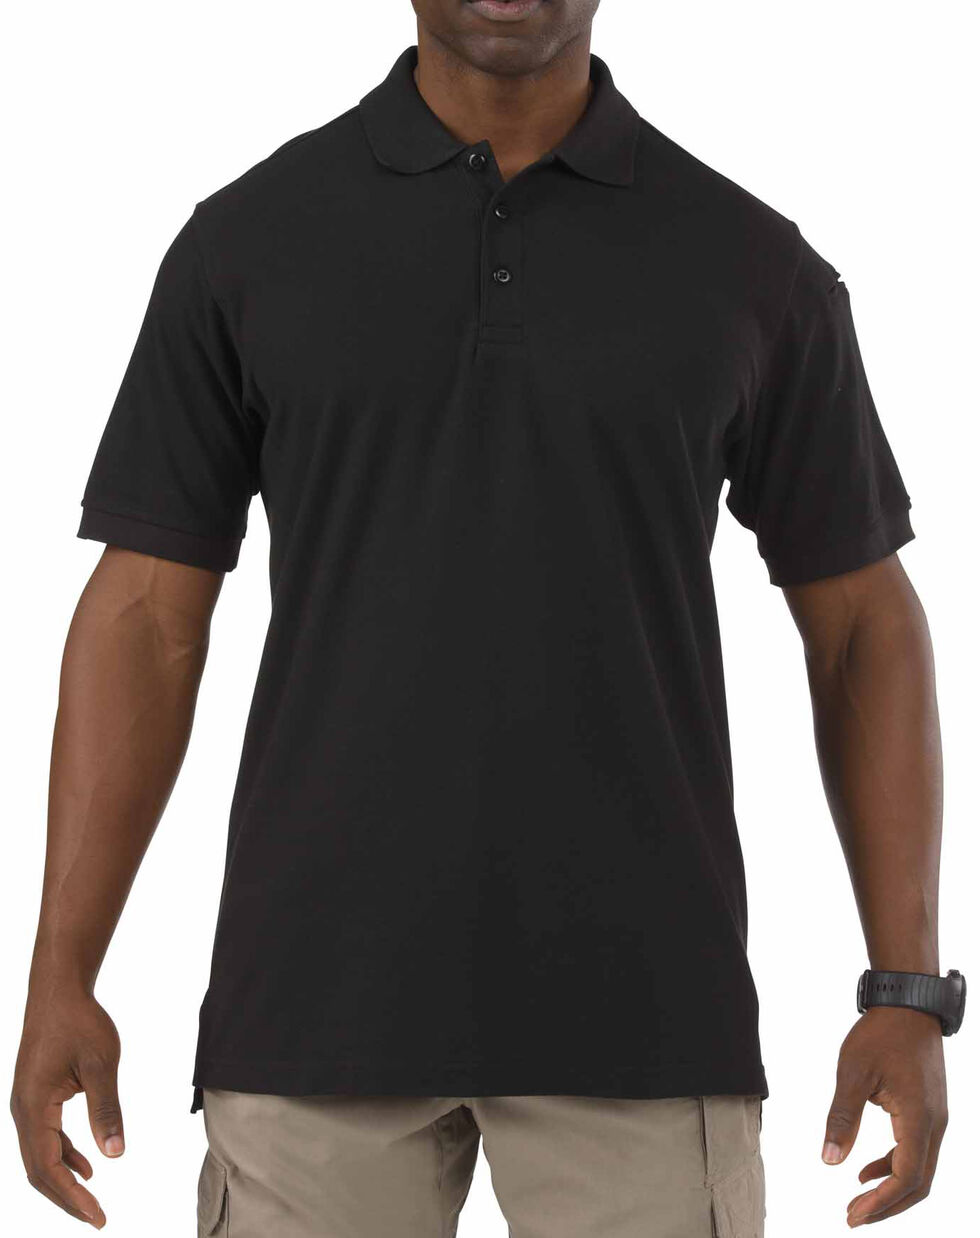 5.11 Tactical Utility Short Sleeve Polo Shirt, Black, hi-res